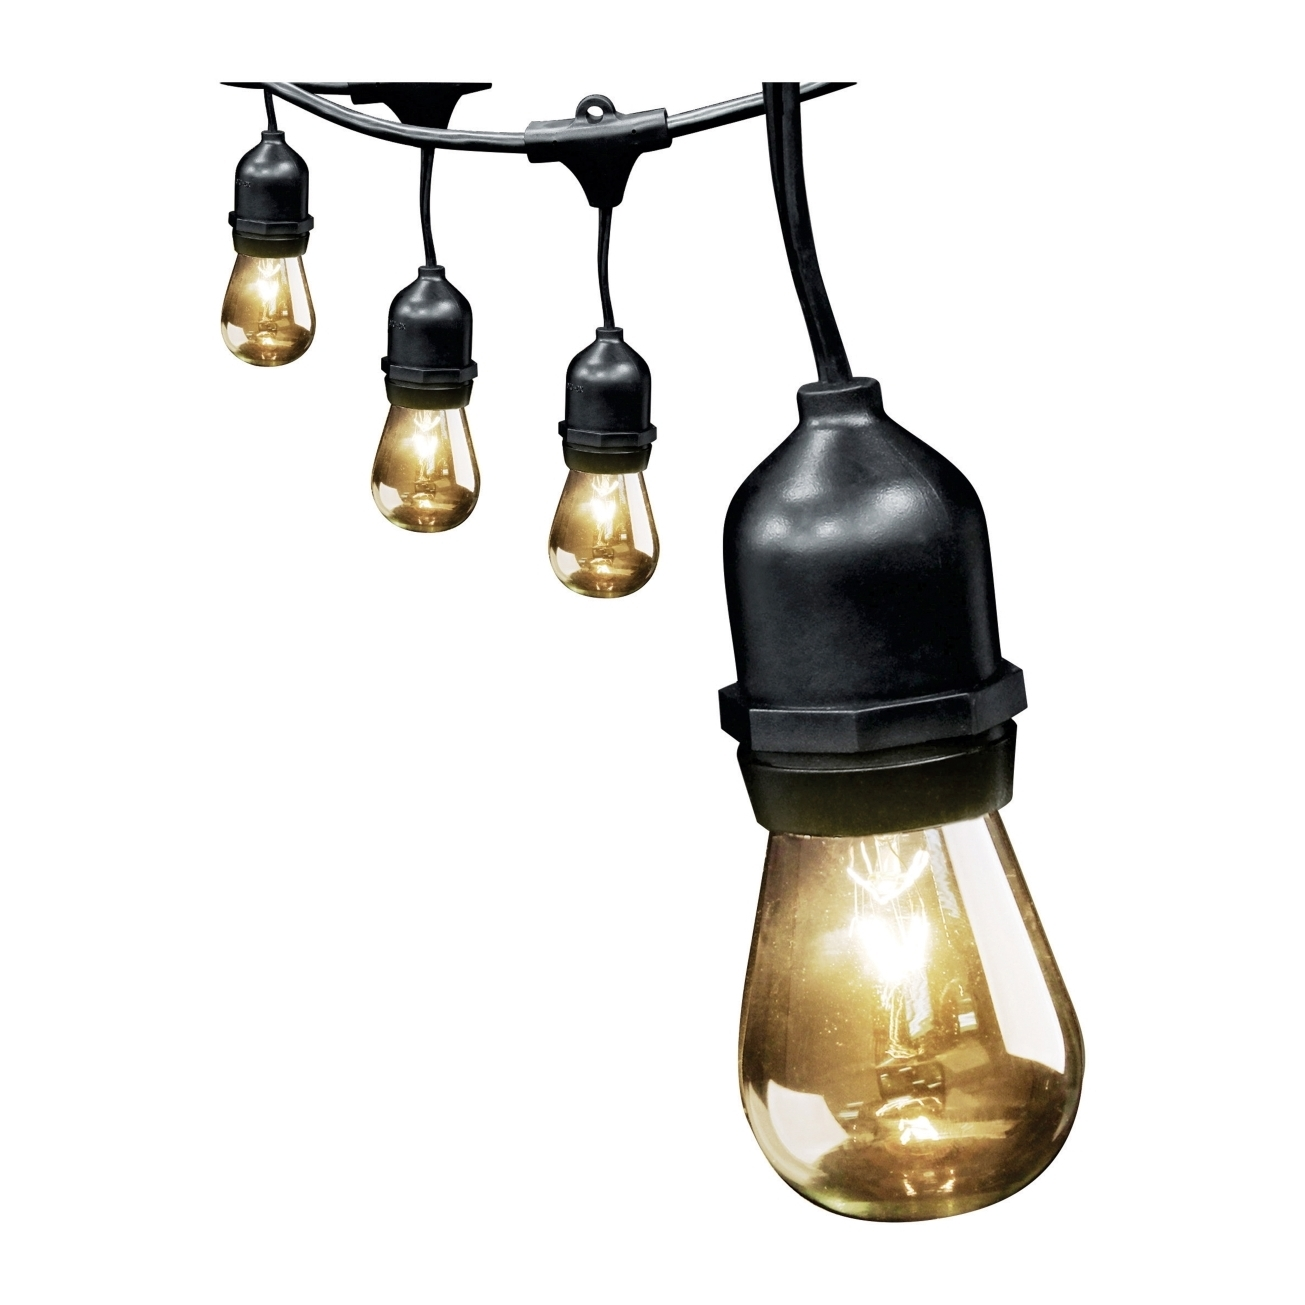 Outdoor Light Fixtures At Ace Hardware Pertaining To Well Known 12 Volt Outdoor Hanging Lights (View 17 of 20)